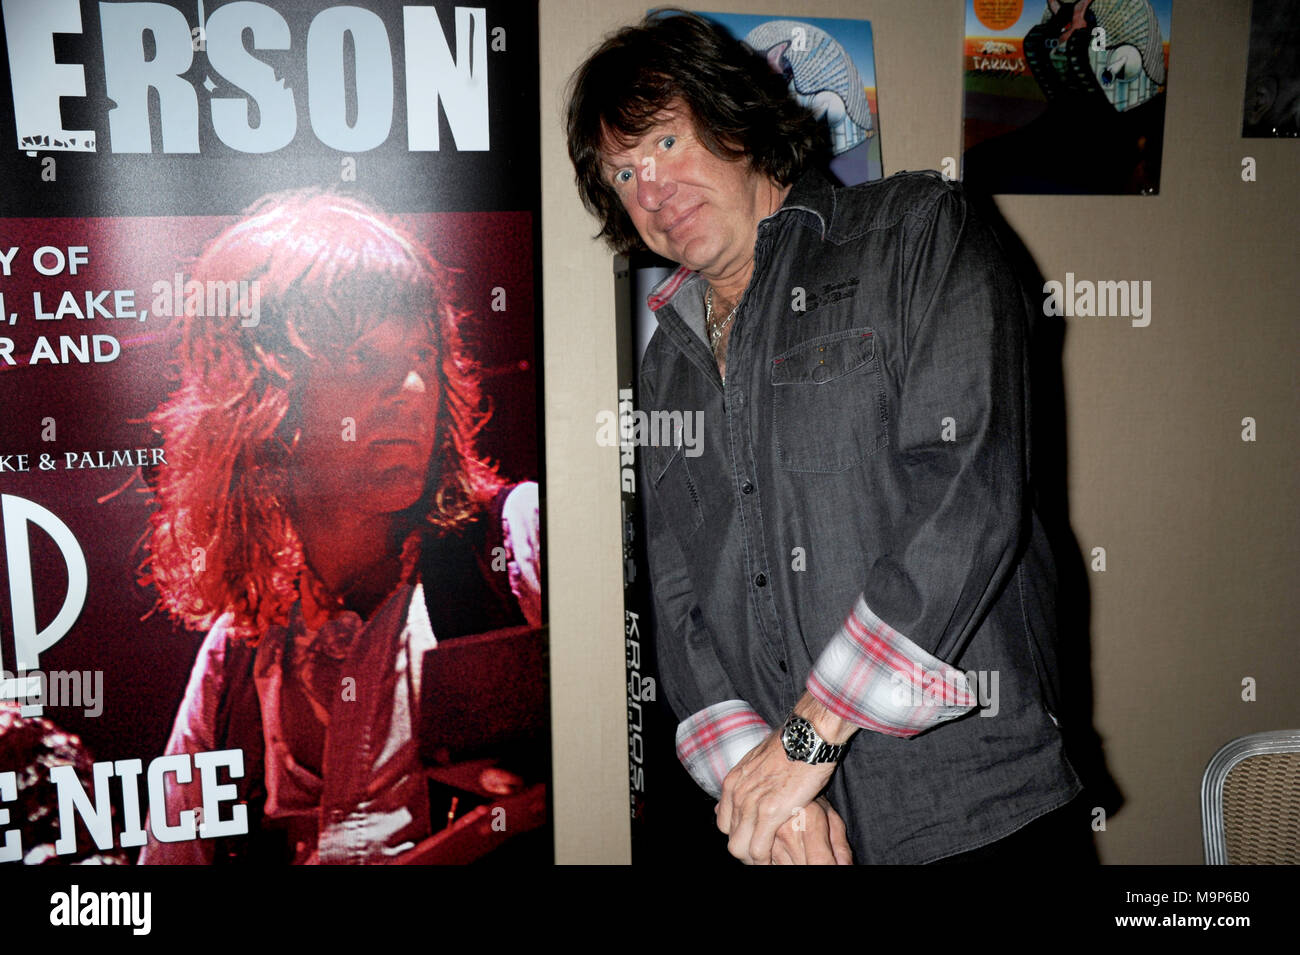 NEW YORK, NY - 2012: Keith Emerson, the flamboyant, English prog-rock pioneer who rose to fame as the keyboardist for supergroup Emerson, Lake & Palmer in the Õ70s, died in Santa Monica, Calif. on Thursday at age 71.Orig Pix taken on 2012 in New York City  People:  Keith Emerson Stock Photo